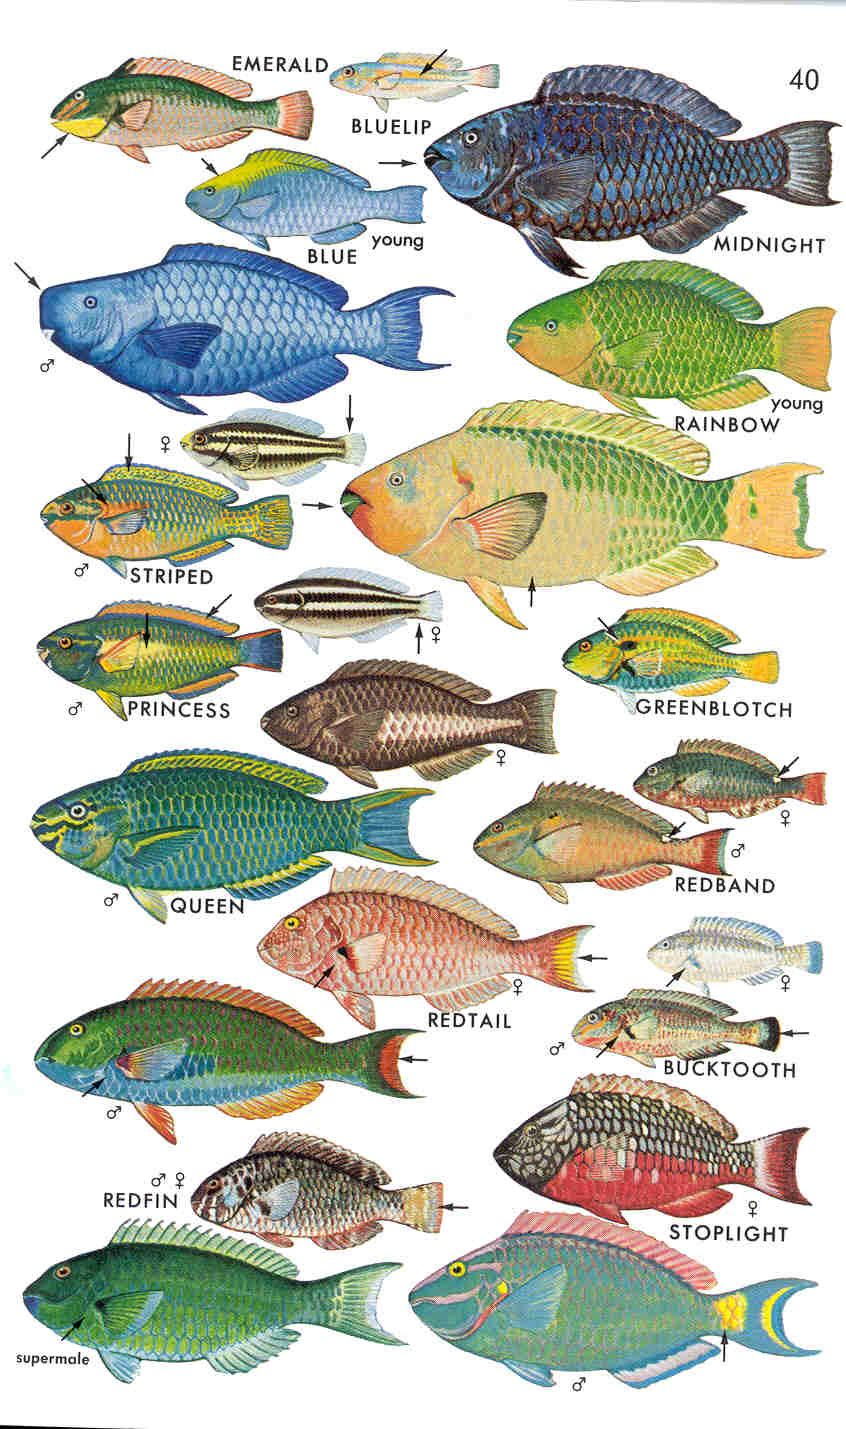 Speciation Parrotfish Parrot Fish Fish Art Rare Animals